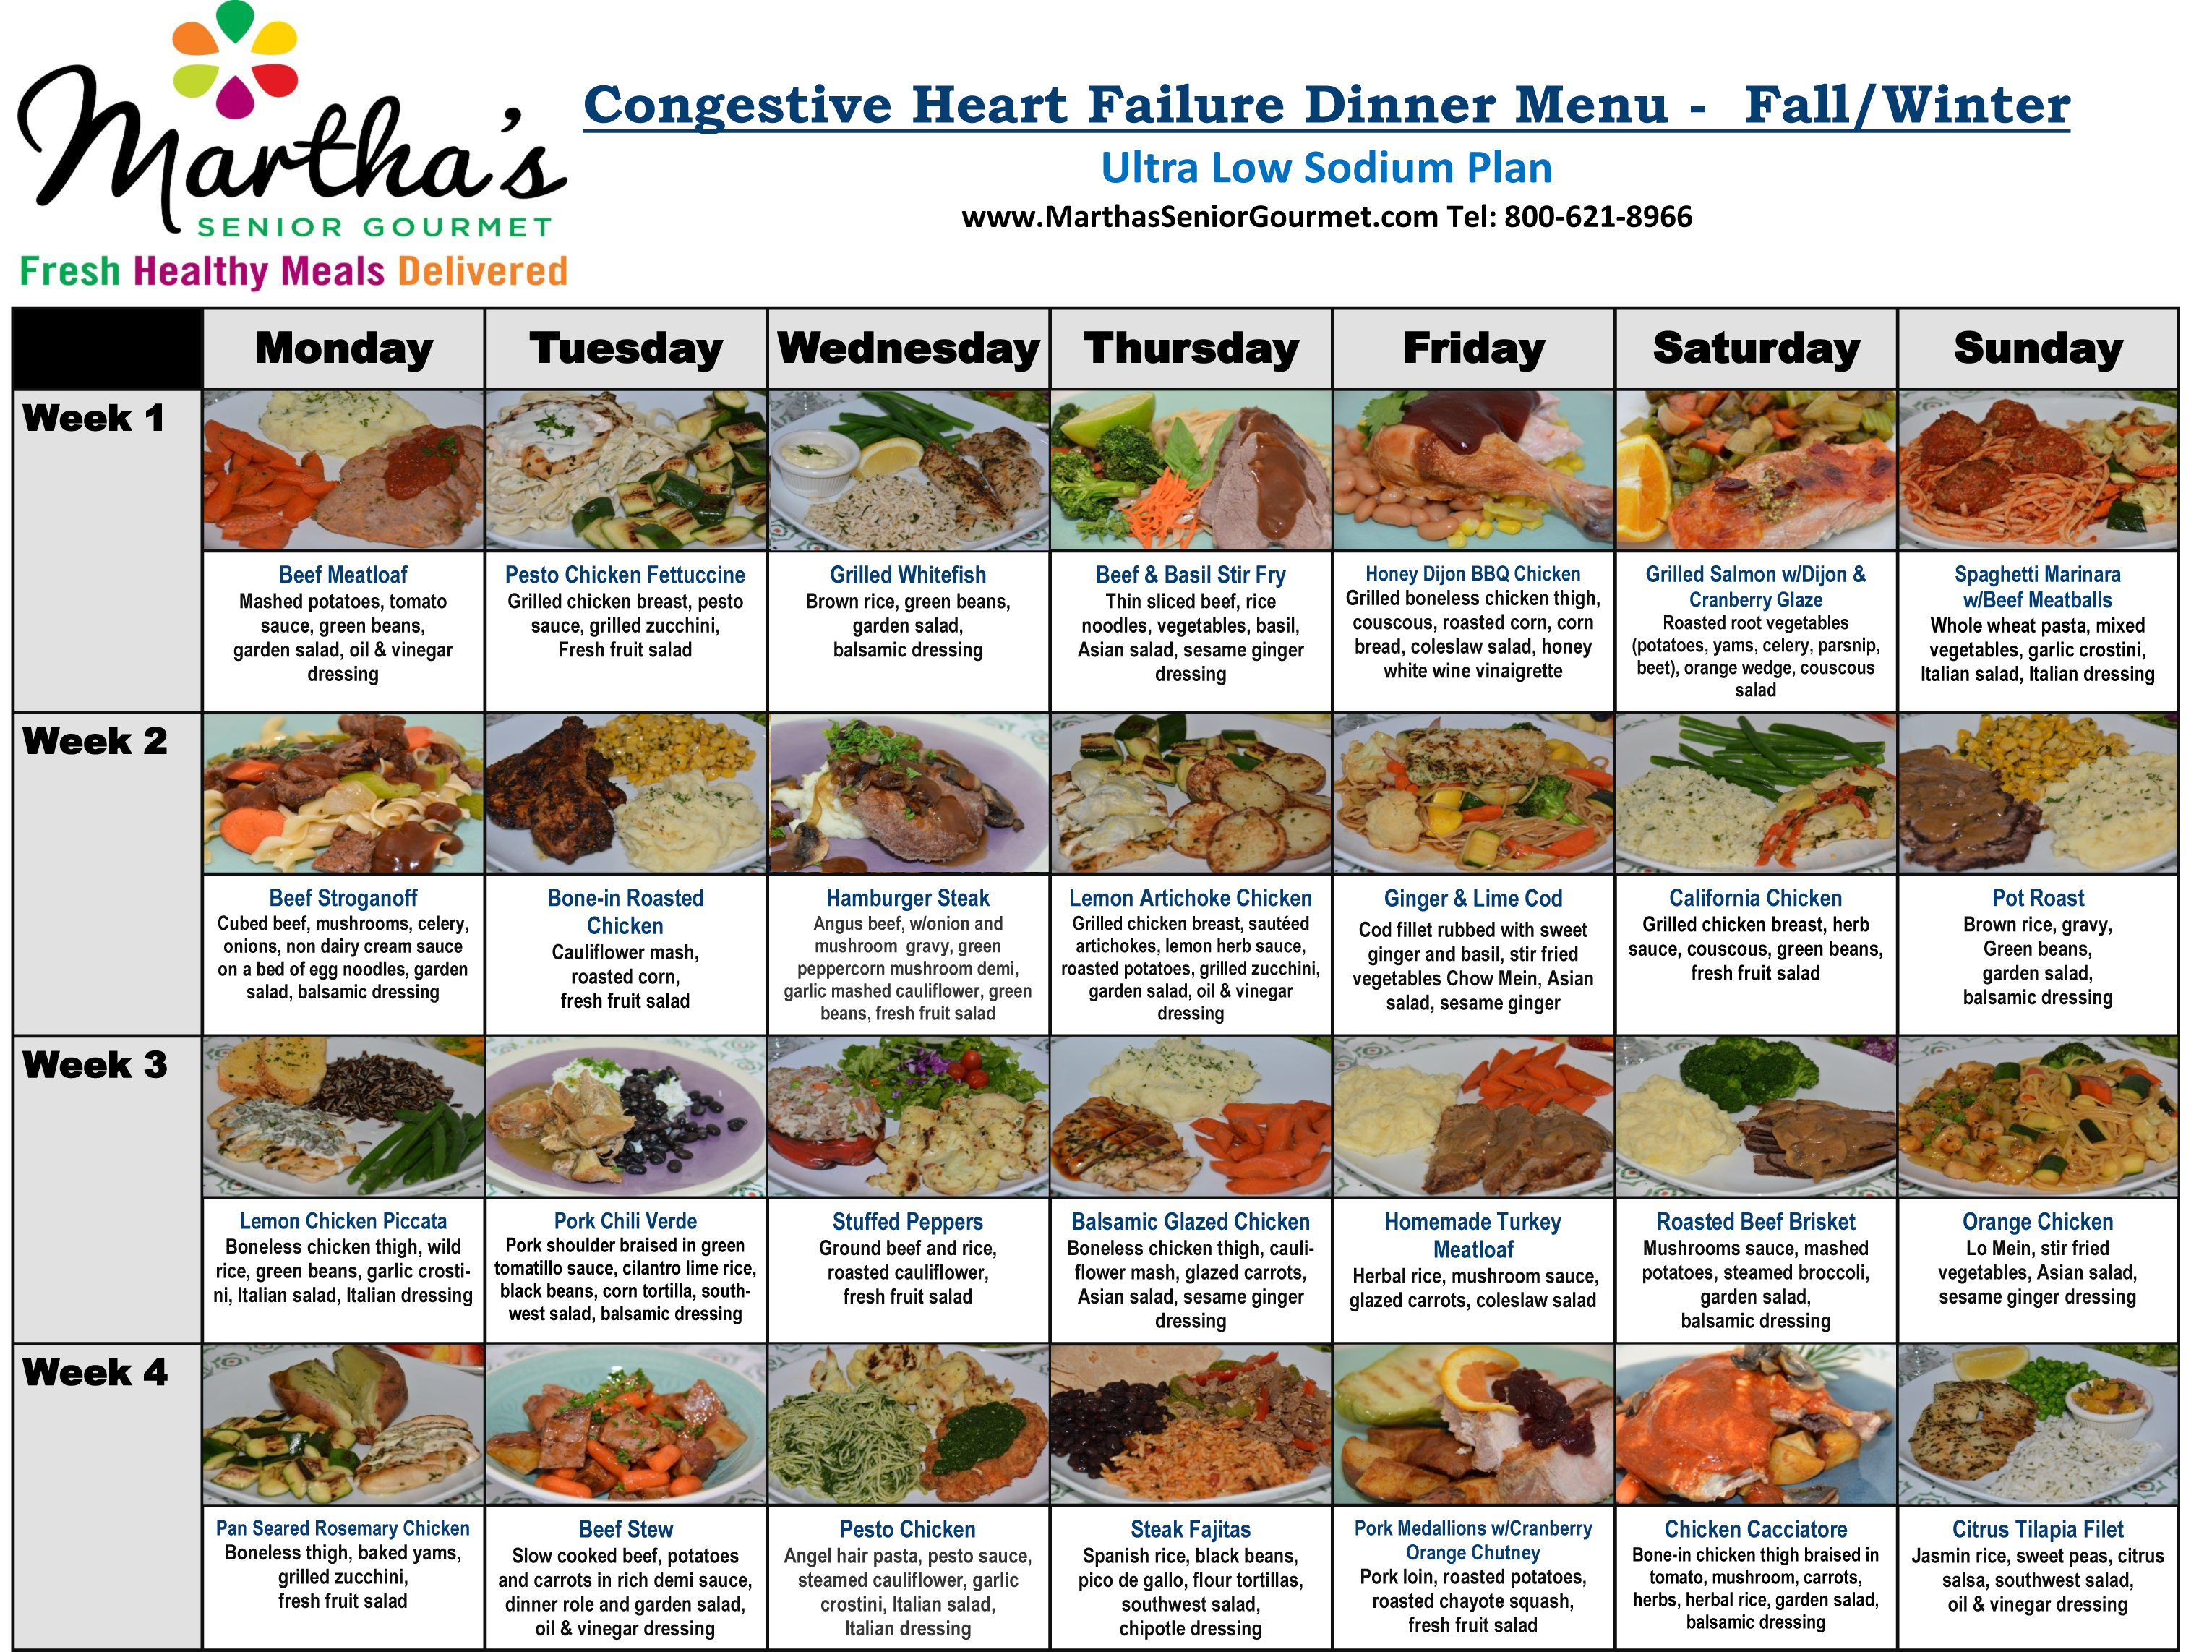 Congestive heart failureultra low sodium meals delivered low sodium meals delivered place your order for a low sodium diet lunch dinner or combo today forumfinder